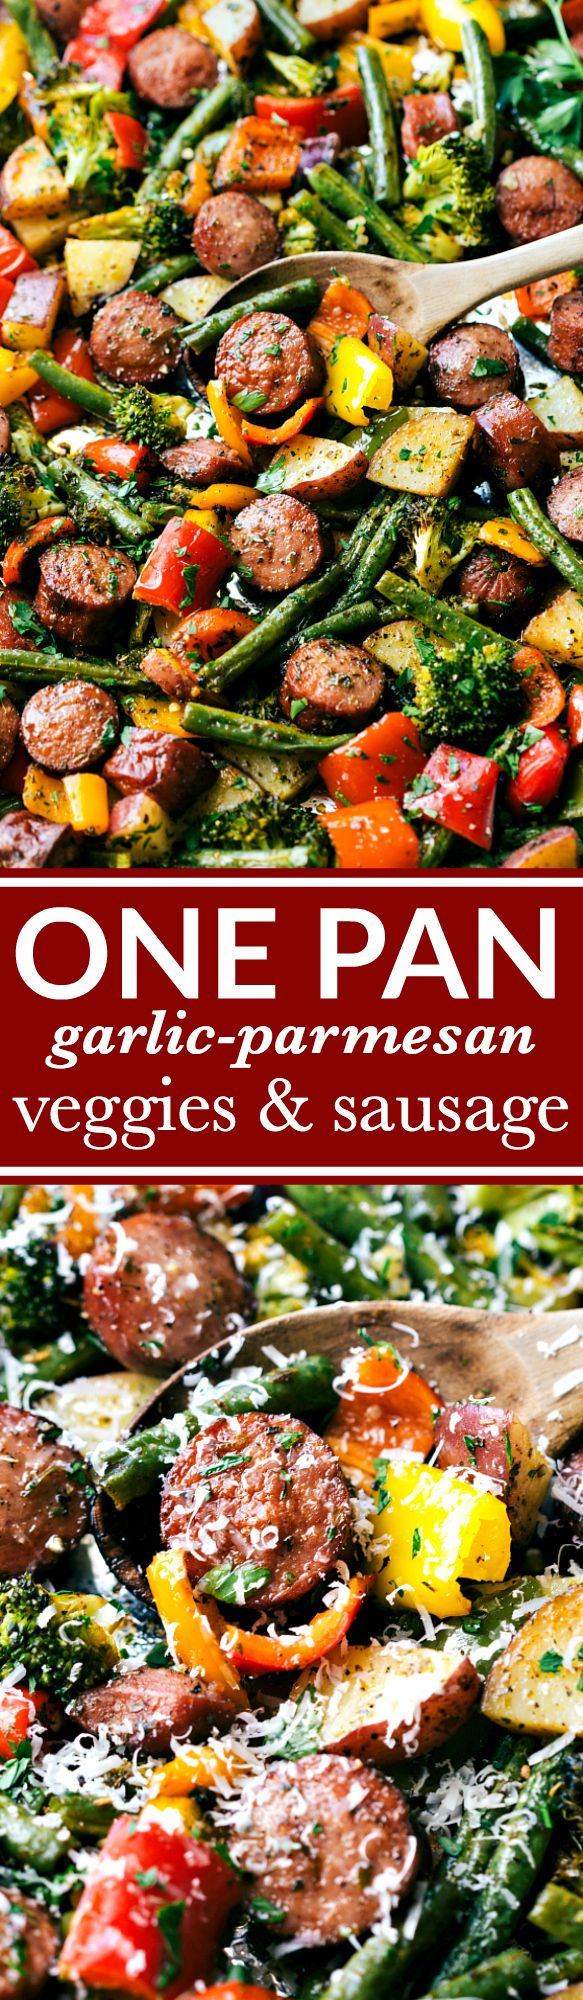 Healthy garlic parmesan roasted veggies with sausage and herbs all made and cooked on one pan. 10 minutes prep, easy clean-up! GREAT MEAL PREP IDEA.